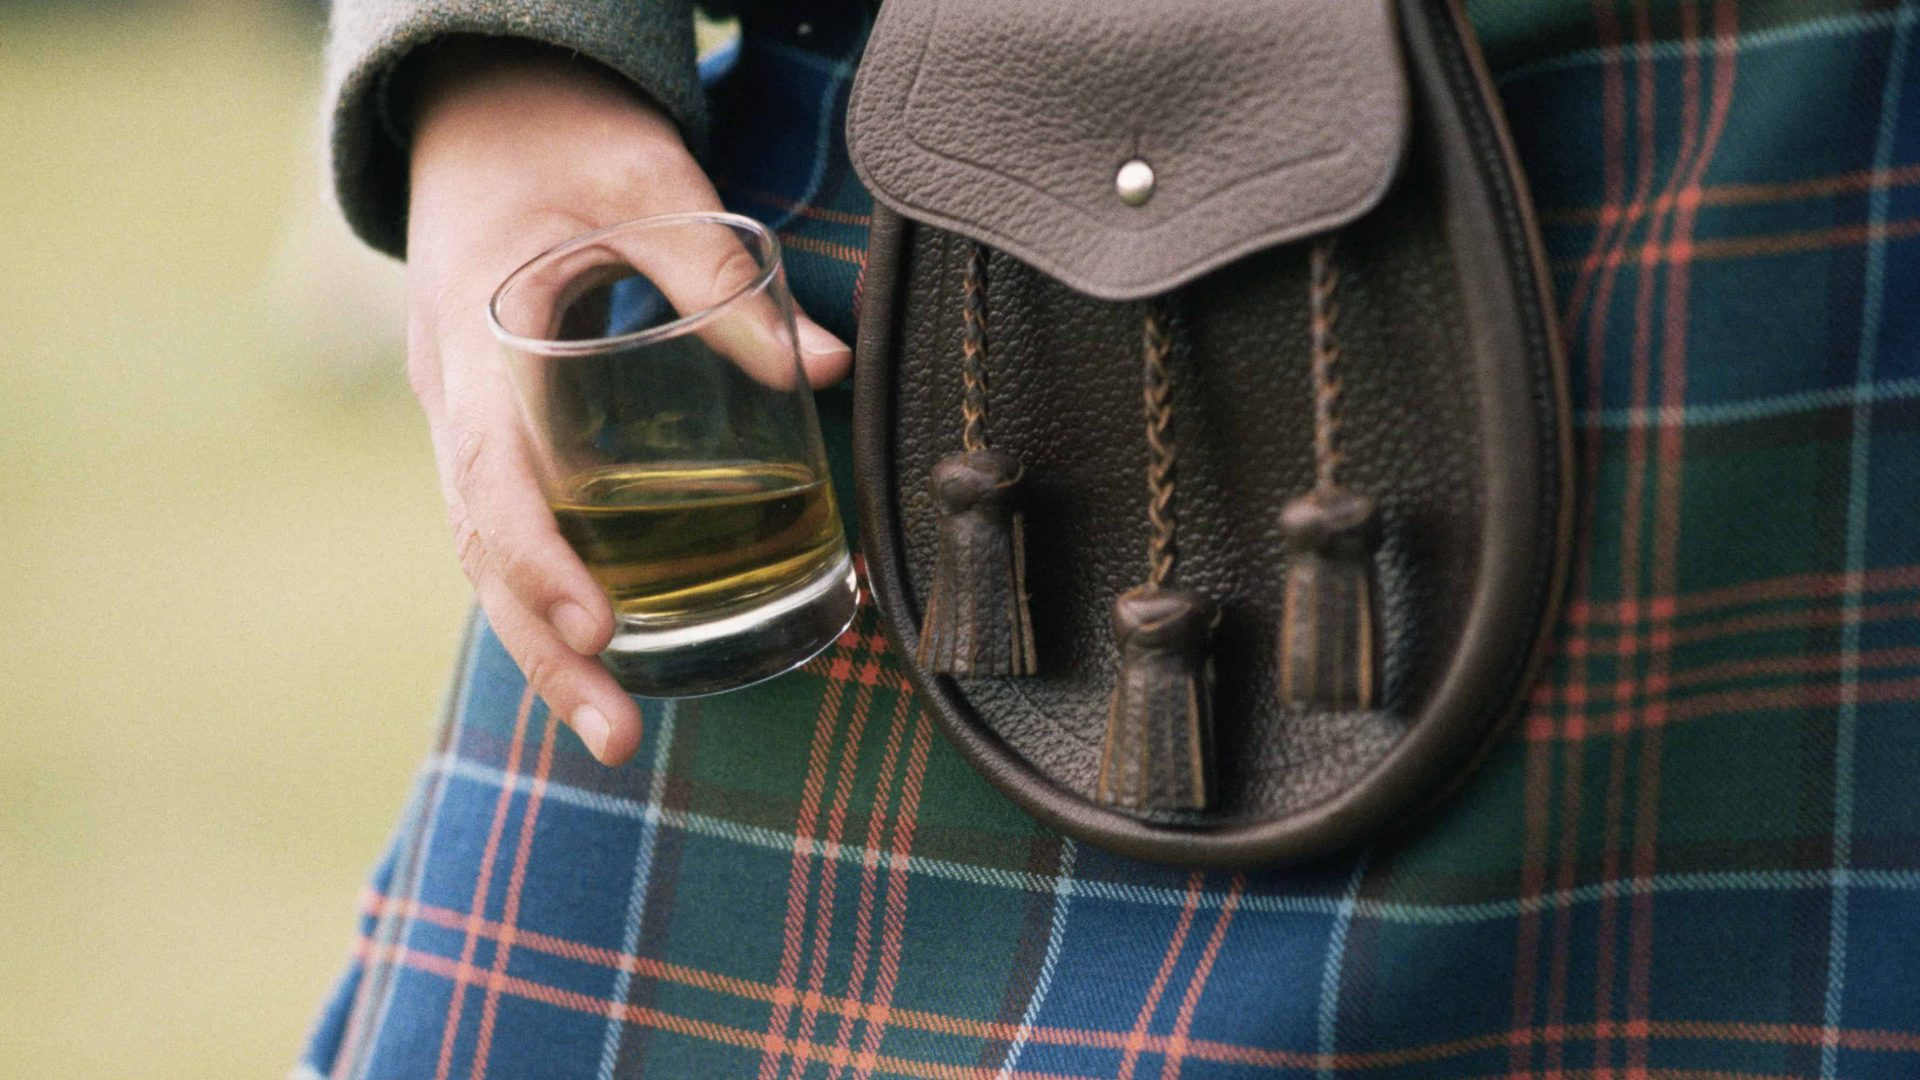 A MAN IN A KILT HOLDS A GLASS OF WHISKY. PIC: P.TOMKINS / VisitScotland / SCOTTISH VIEWPOINT Tel: +44 (0) 131 622 7174 E-Mail : info@scottishviewpoint.com Web: www.scottishviewpoint.com This photograph cannot be used without prior permission from Scottish Viewpoint. PICTURE SCANNED TO 100MB. POSSIBLE USE FOR EXHIBITIONS.